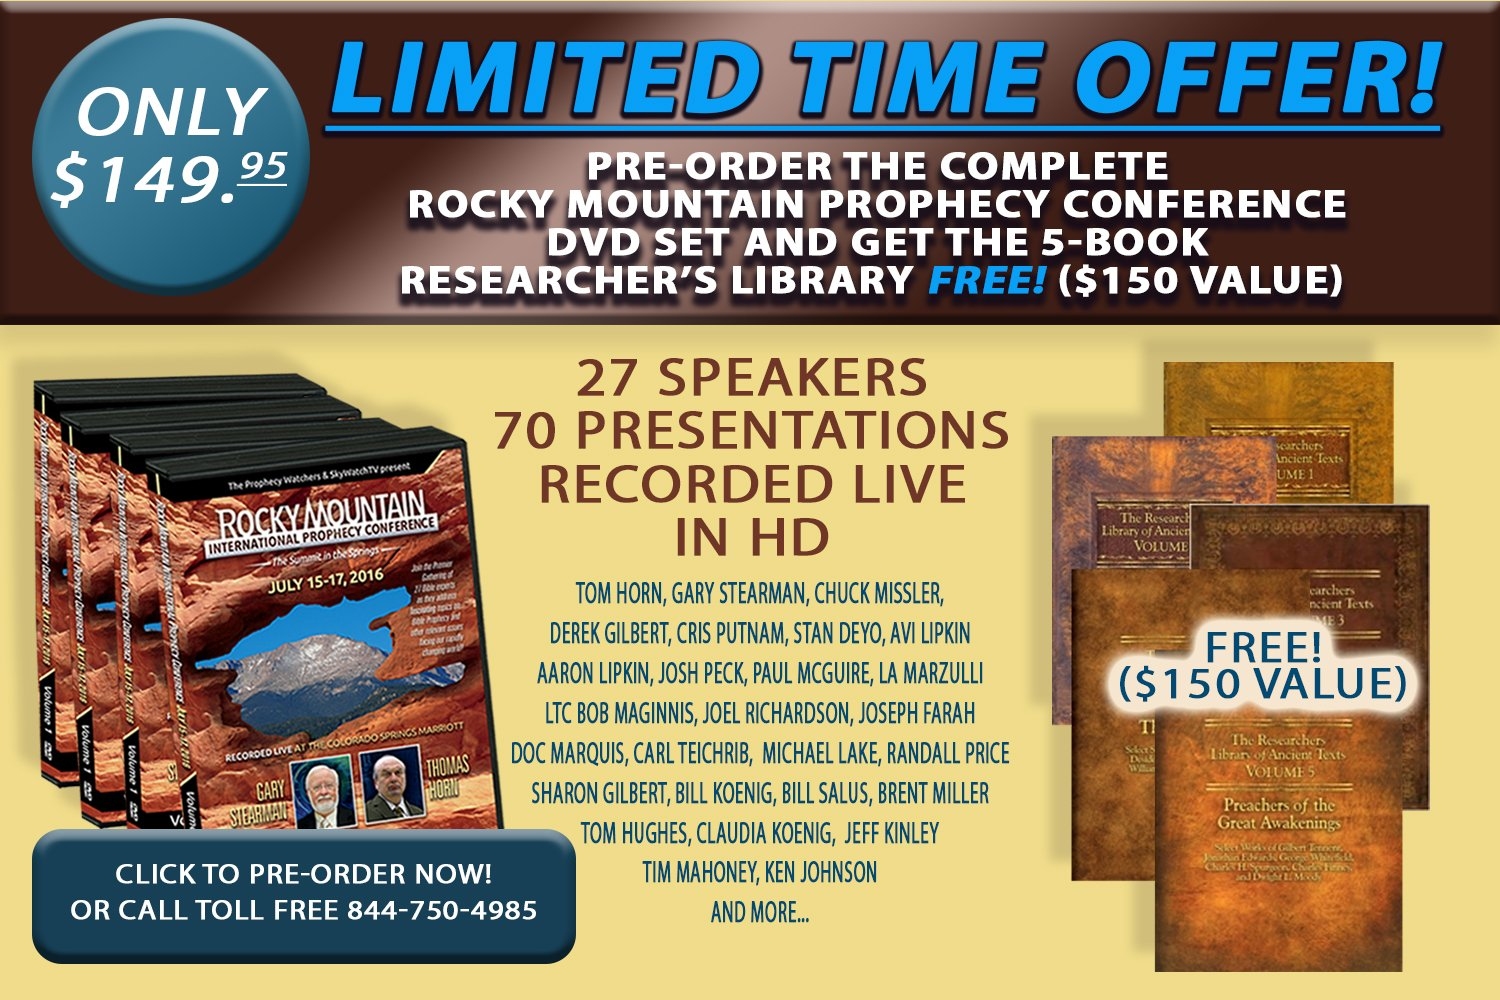 """FREE! GET THE HUGE 5-VOLUME """"RESEARCHERS LIBRARY OF ANCIENT TEXTS"""" ($150.00 VALUE) TO KEEP OR GIVE AS A GIFT WHEN YOU PRE-ORDER THE COMPLETE ROCKY MOUNTAIN PROPHECY CONFERENCE DVD SET!"""